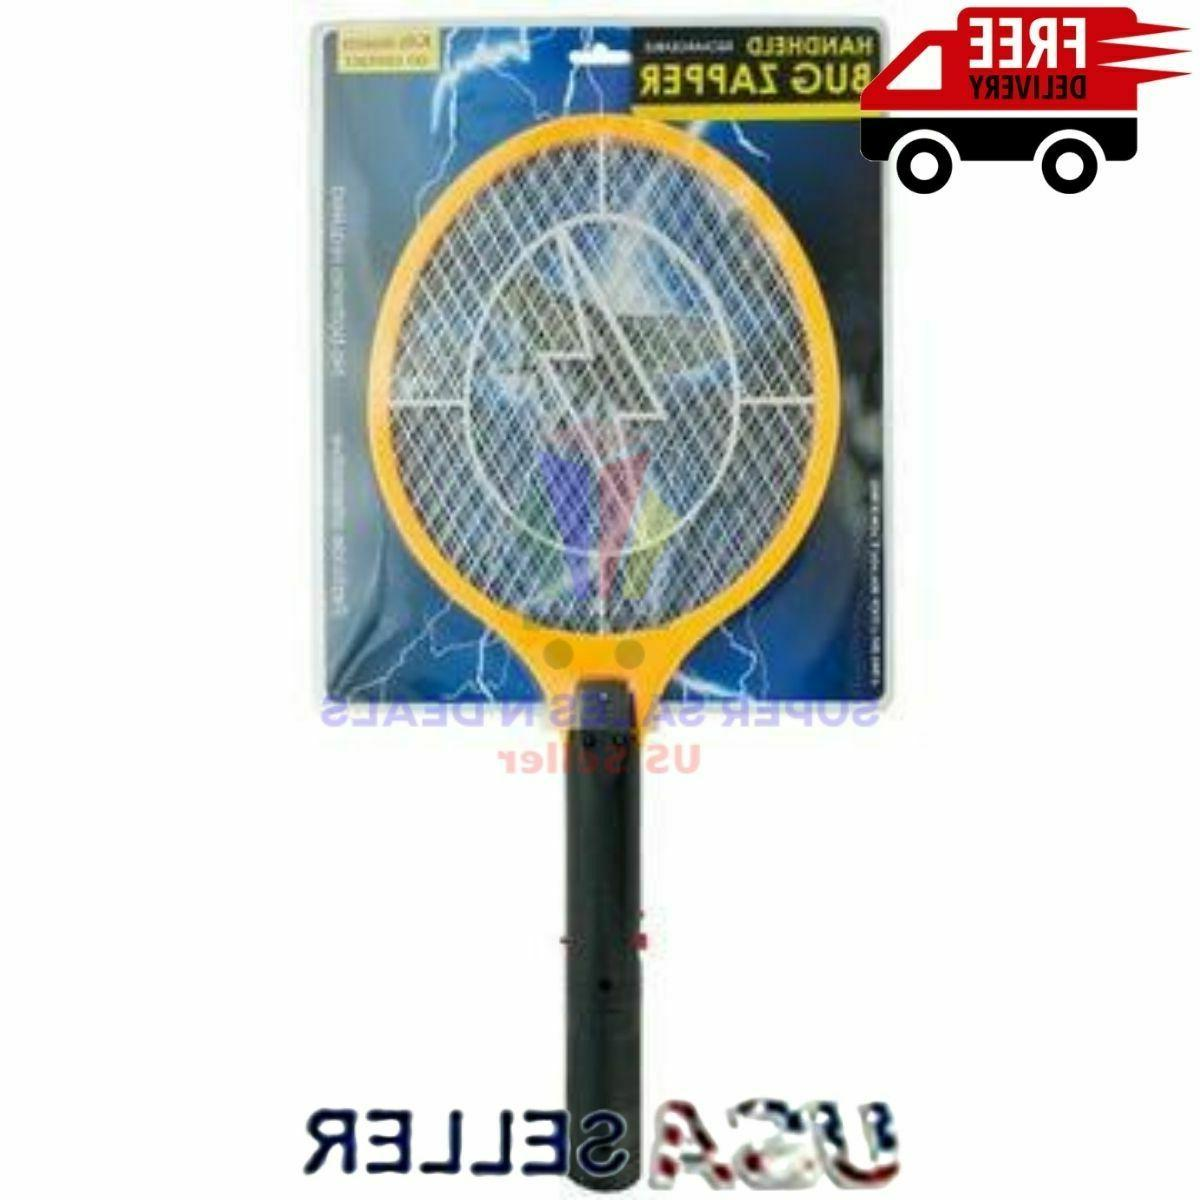 BUG ZAPPER Cordless Rechargeable Mosquito Insect Electric Fl